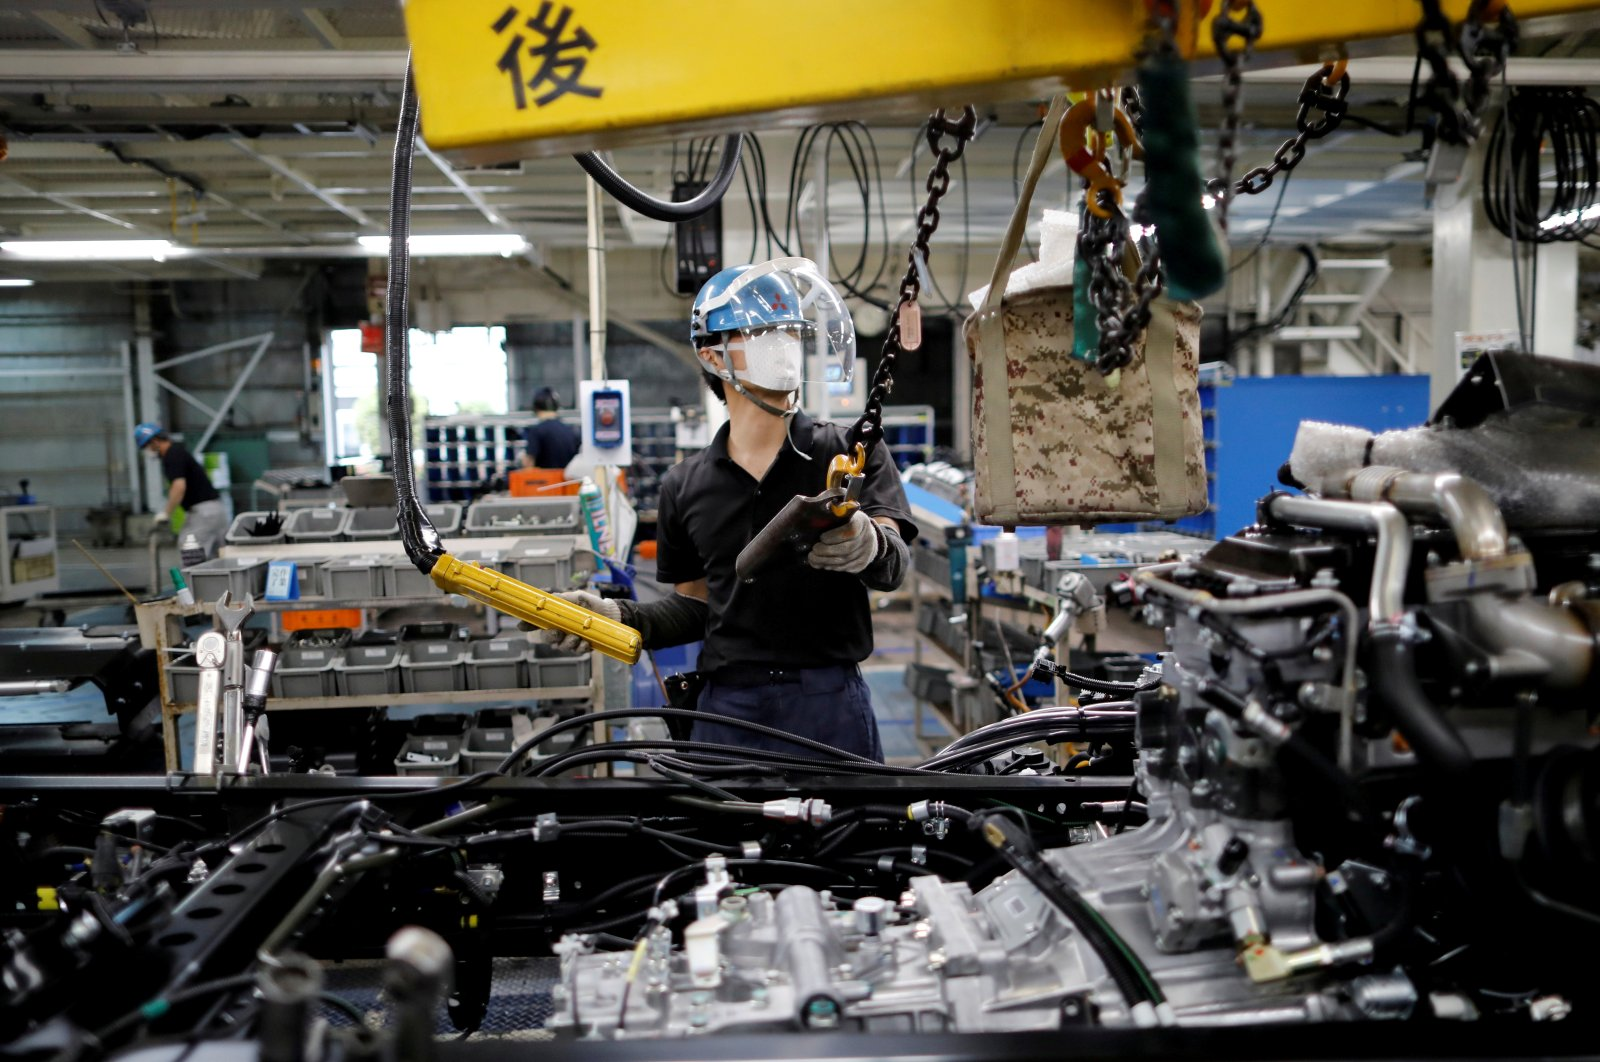 An employee wearing a protective face mask and face guard works on the automobile assembly line at Kawasaki factory of Mitsubishi Fuso Truck and Bus Corp, owned by Germany-based Daimler AG, in Kawasaki, south of Tokyo, Japan, May 18, 2020. (Reuters Photo)